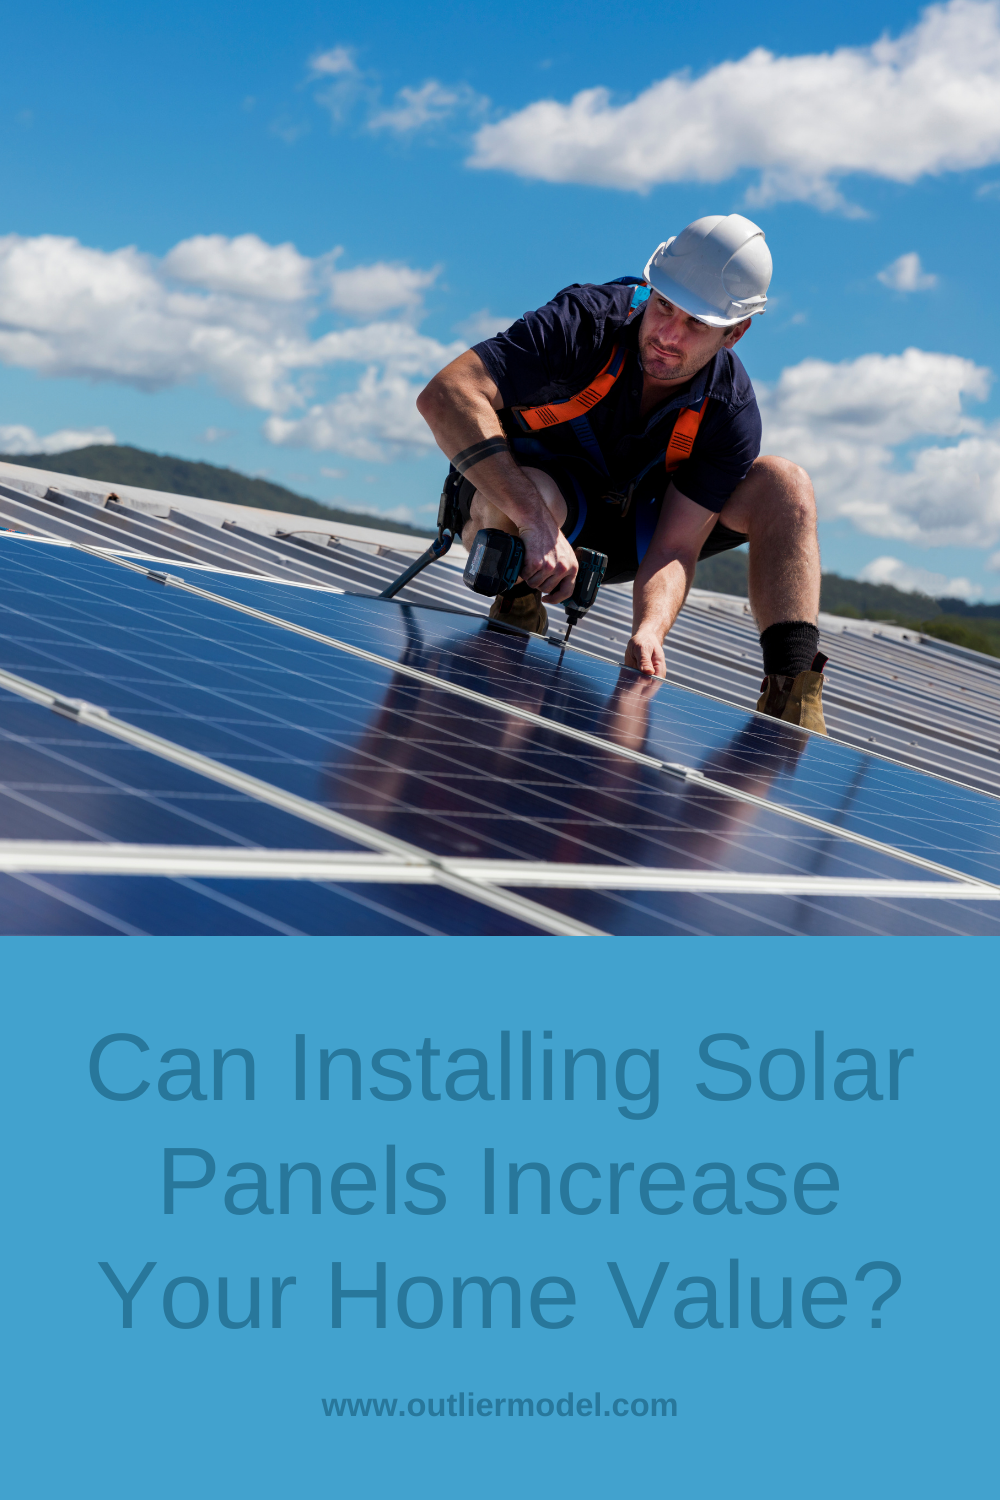 Can Installing Solar Panels Increase Your Home Value